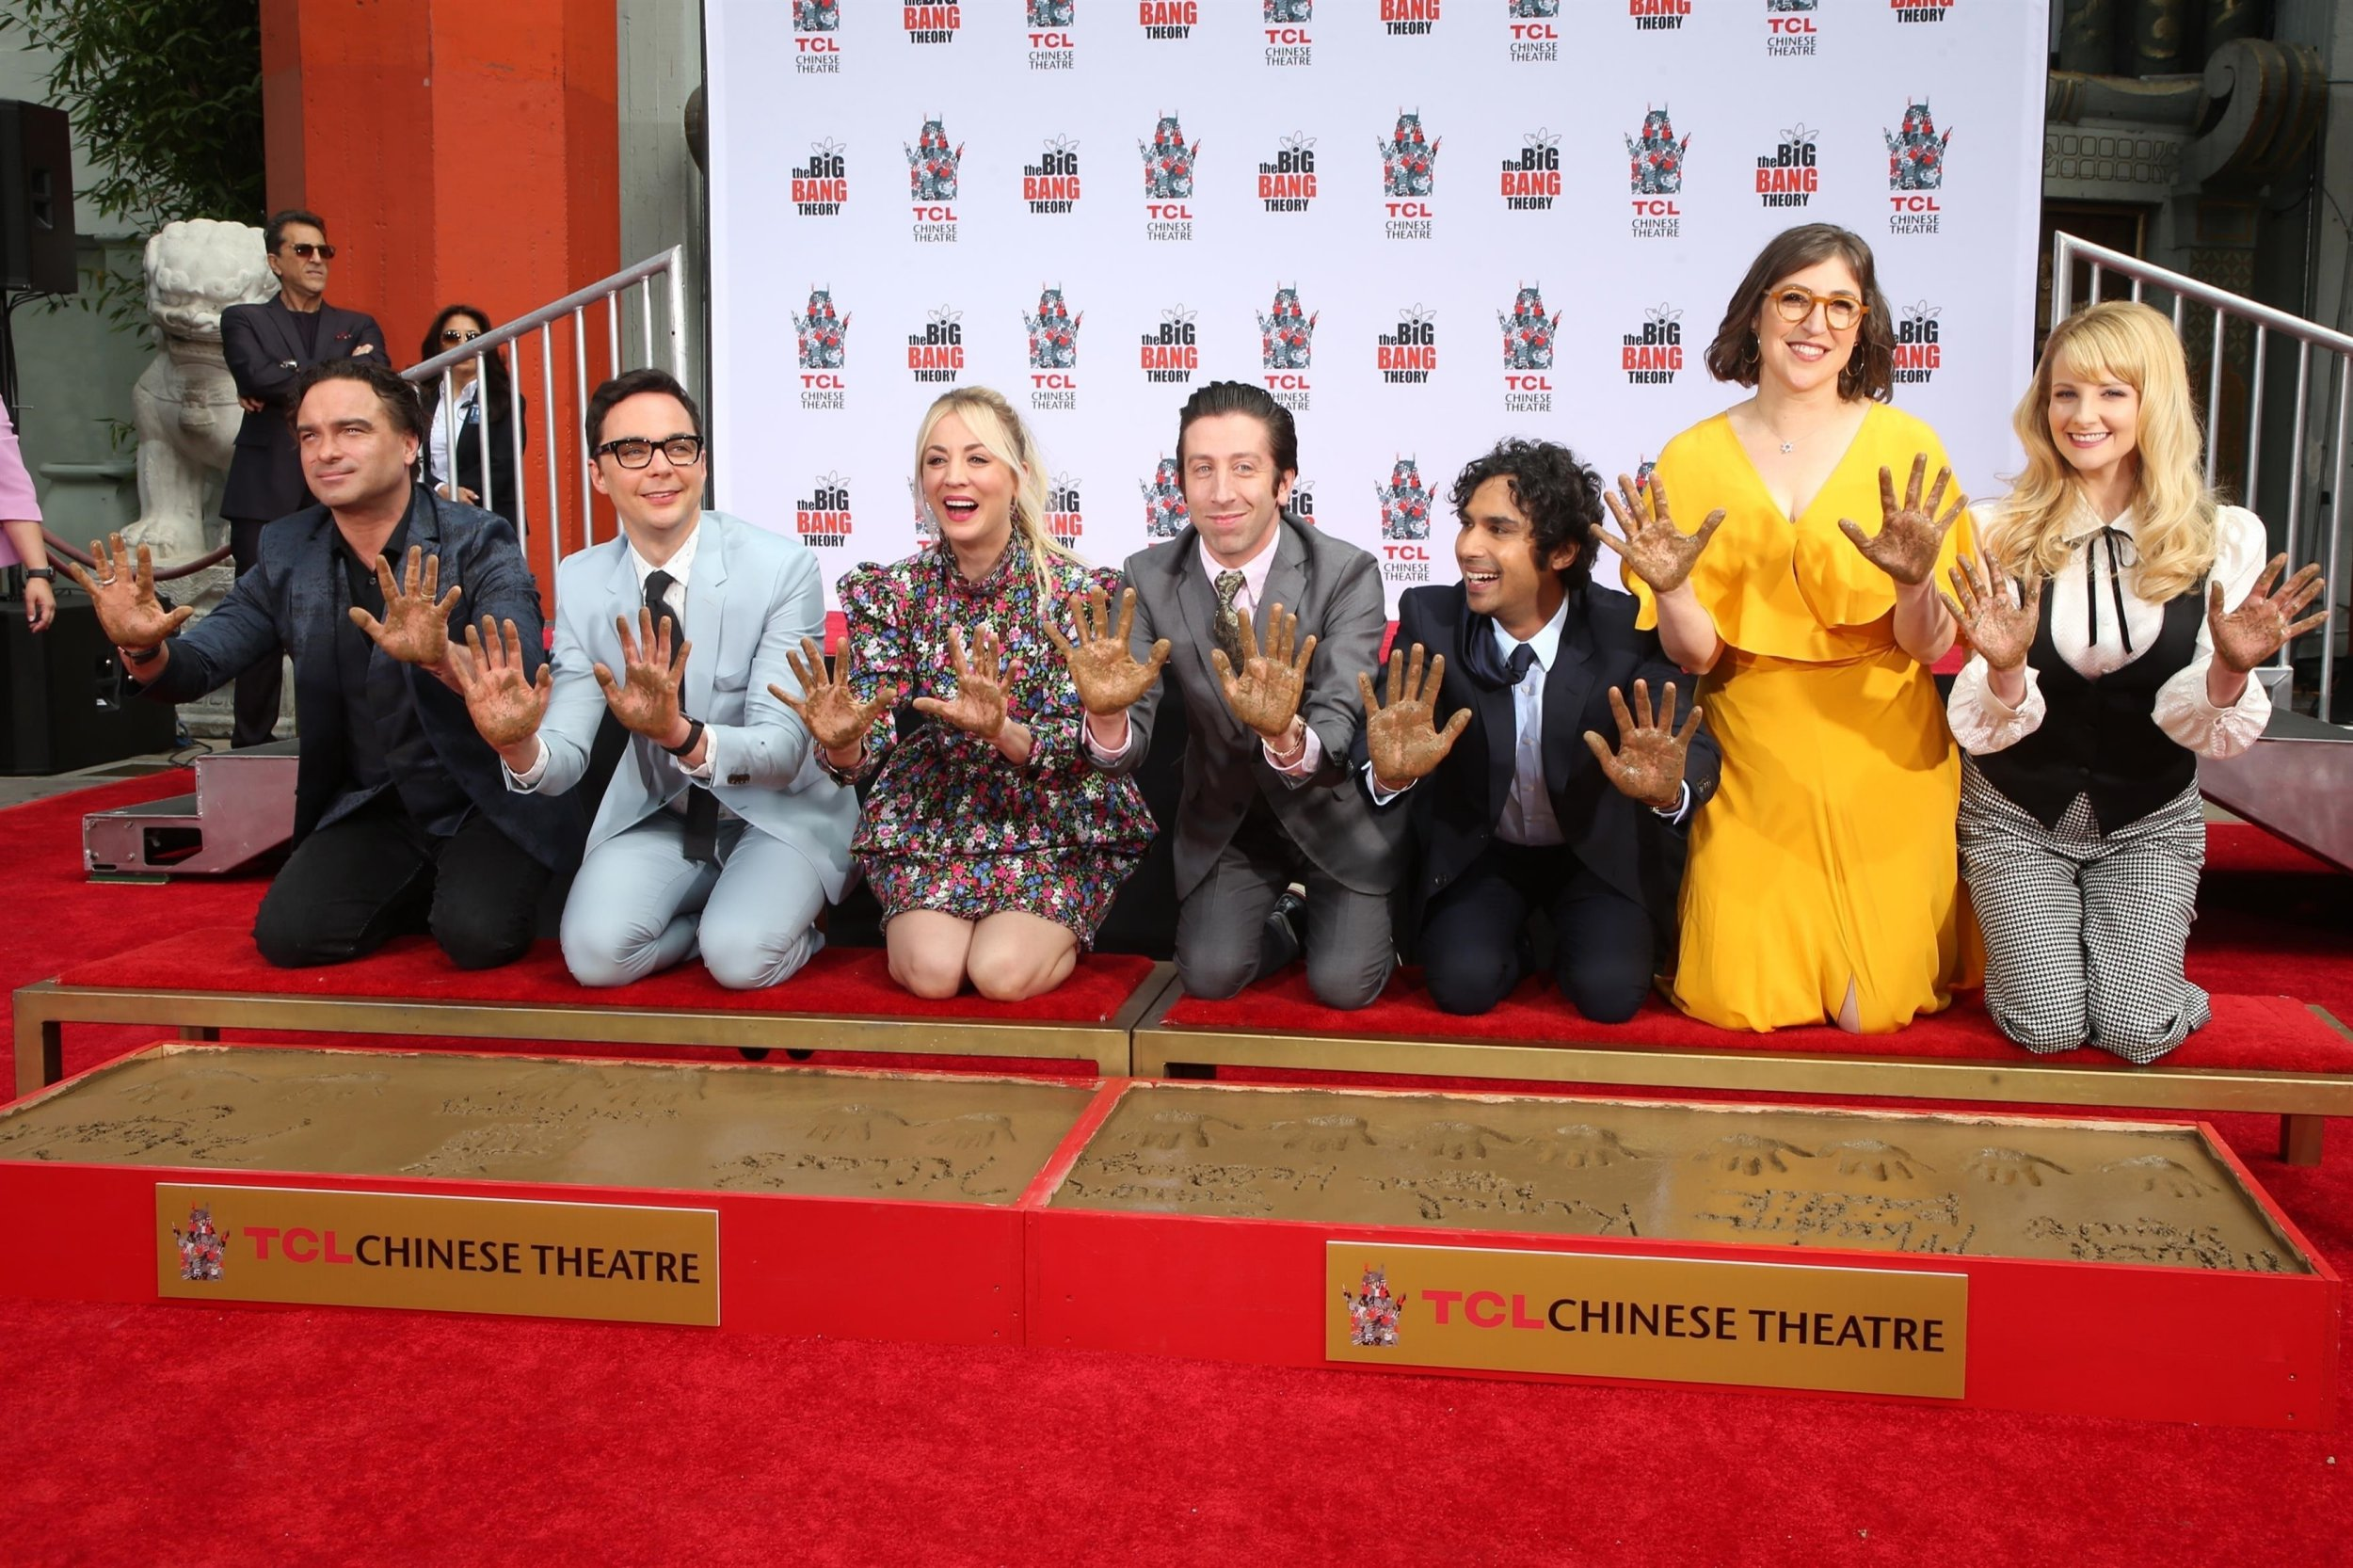 The Big Bang Theory make history with ever-lasting hand-print ceremony after taping final episode